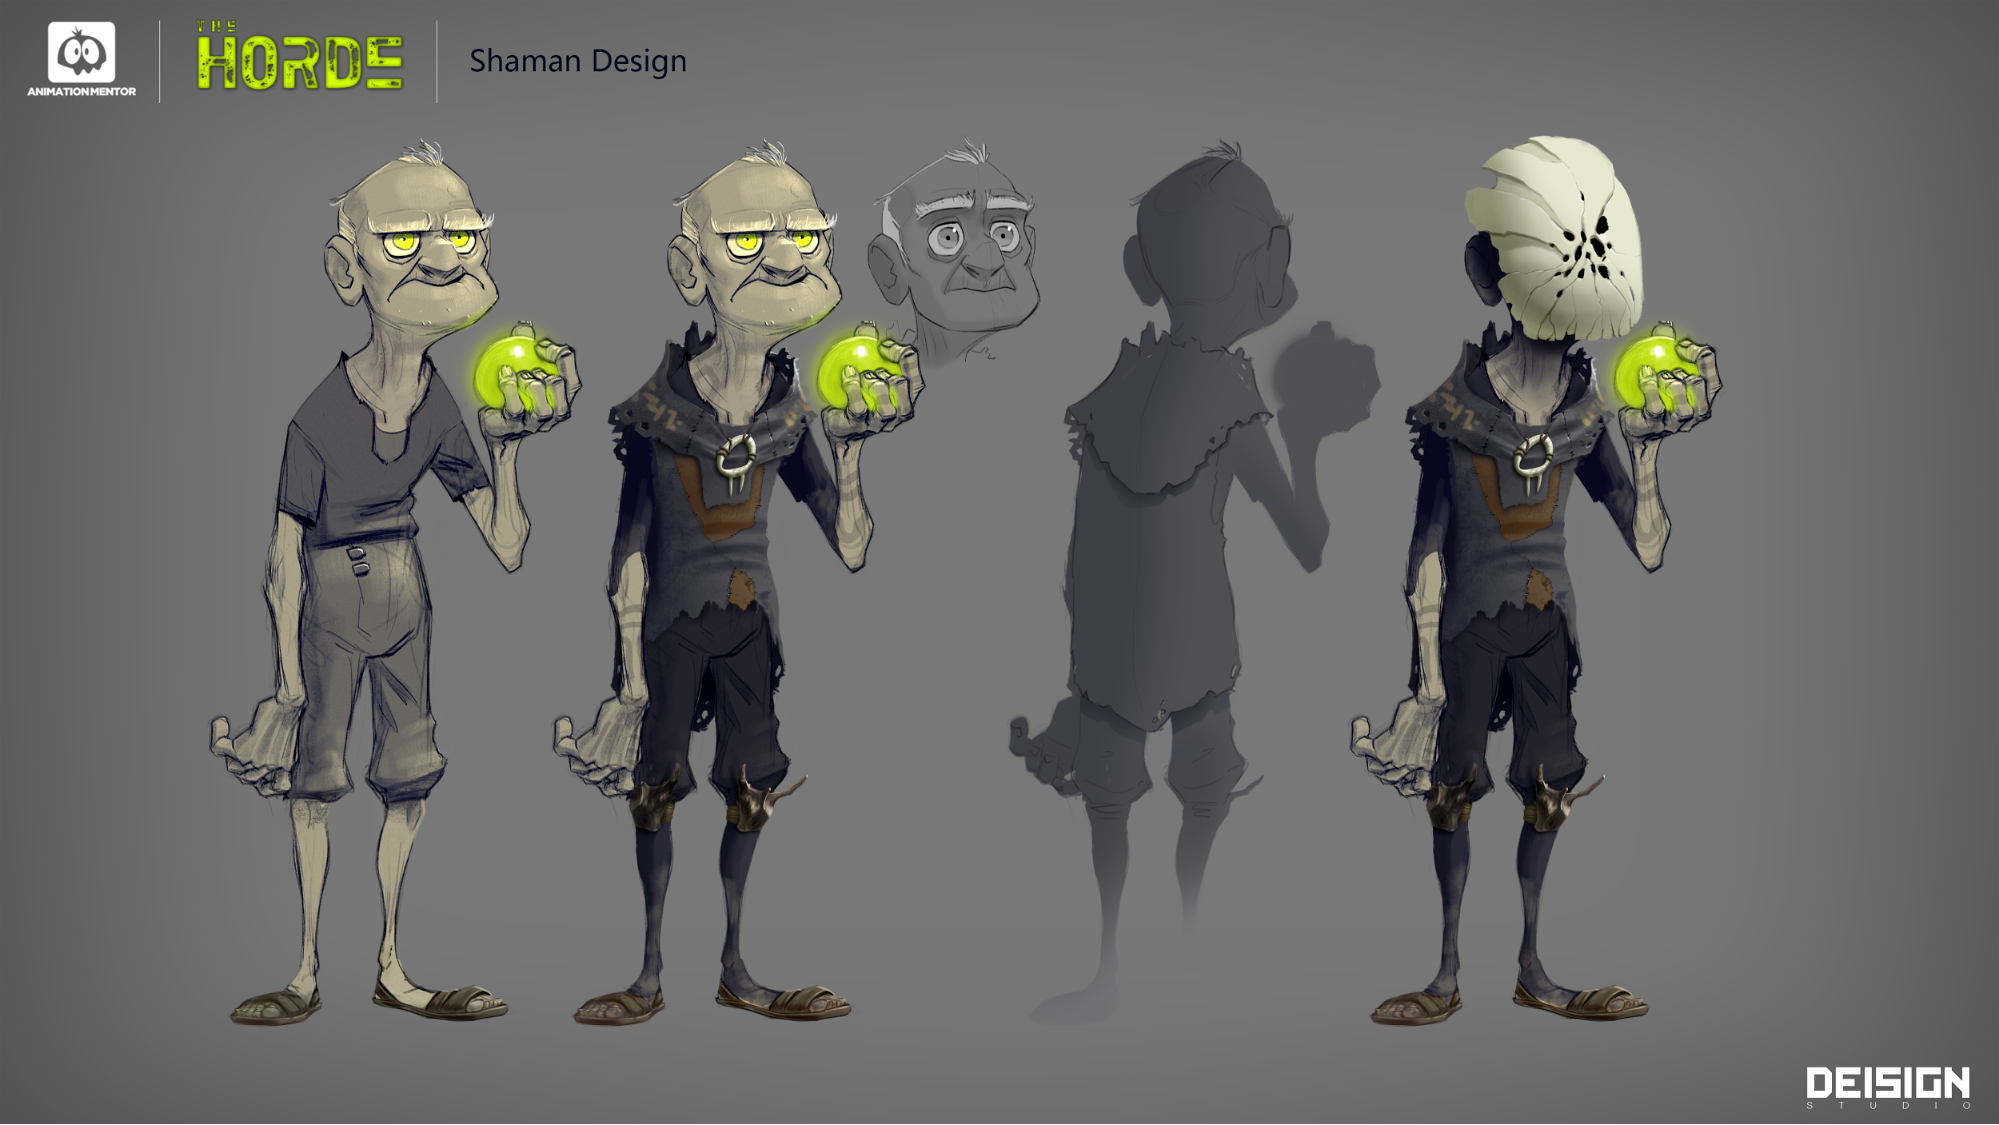 shaman character design final Introducing the Shaman, A Mystical Animation Mentor Character Rig